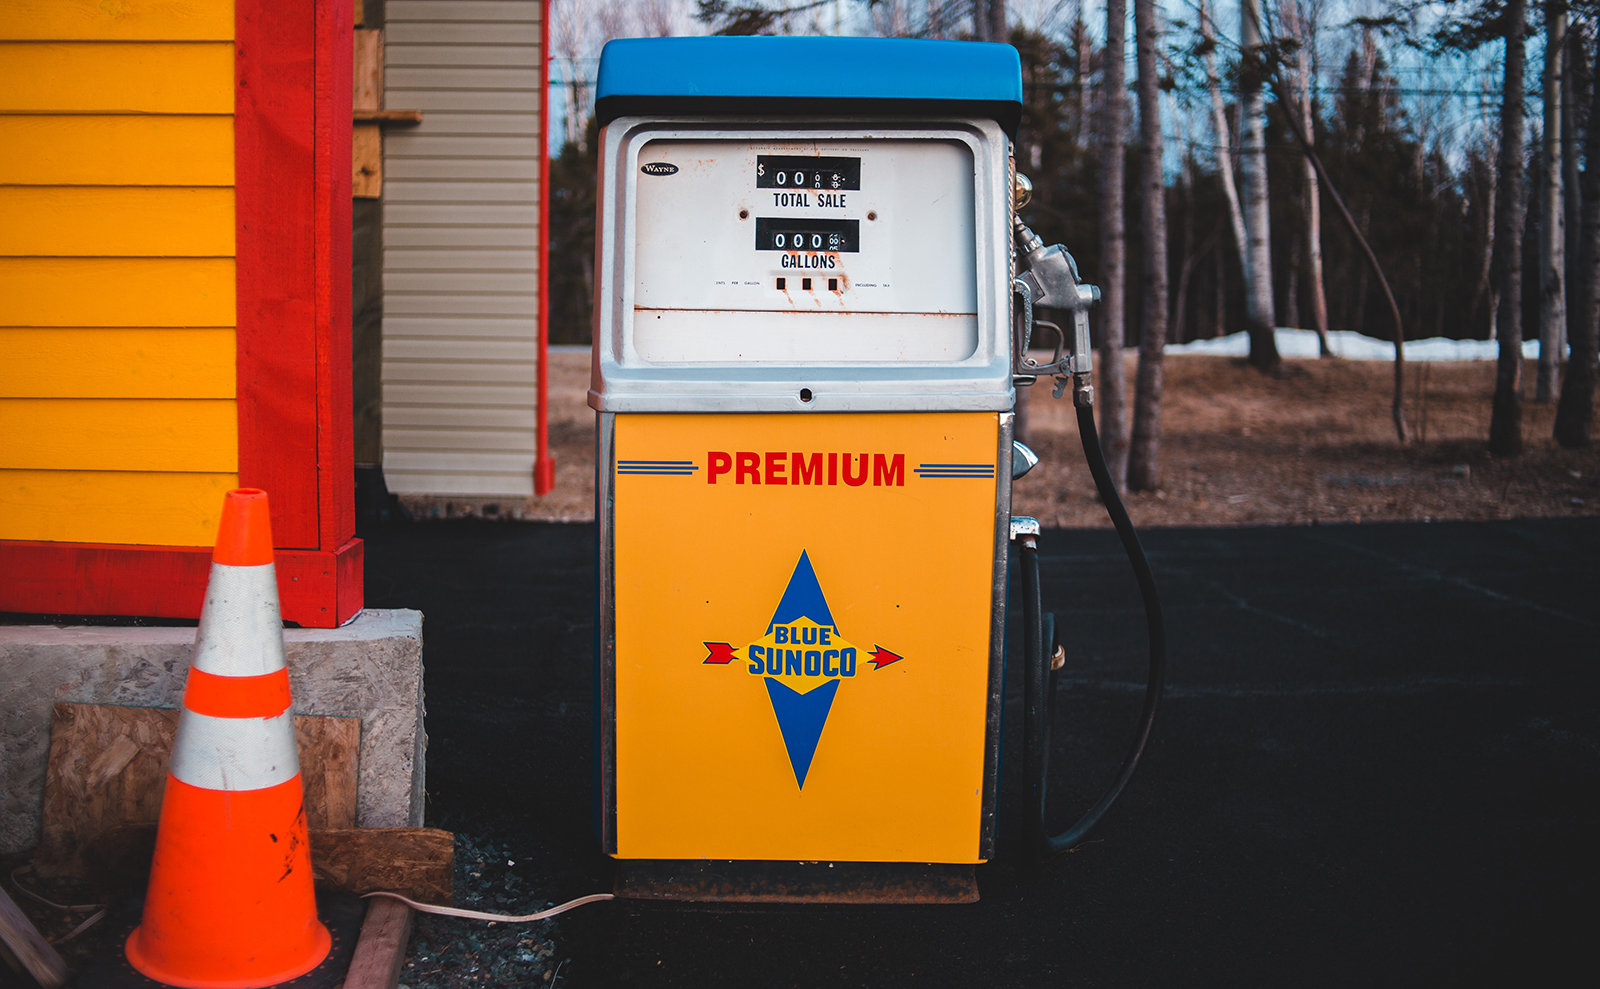 vintage gas pump at a rural gas station